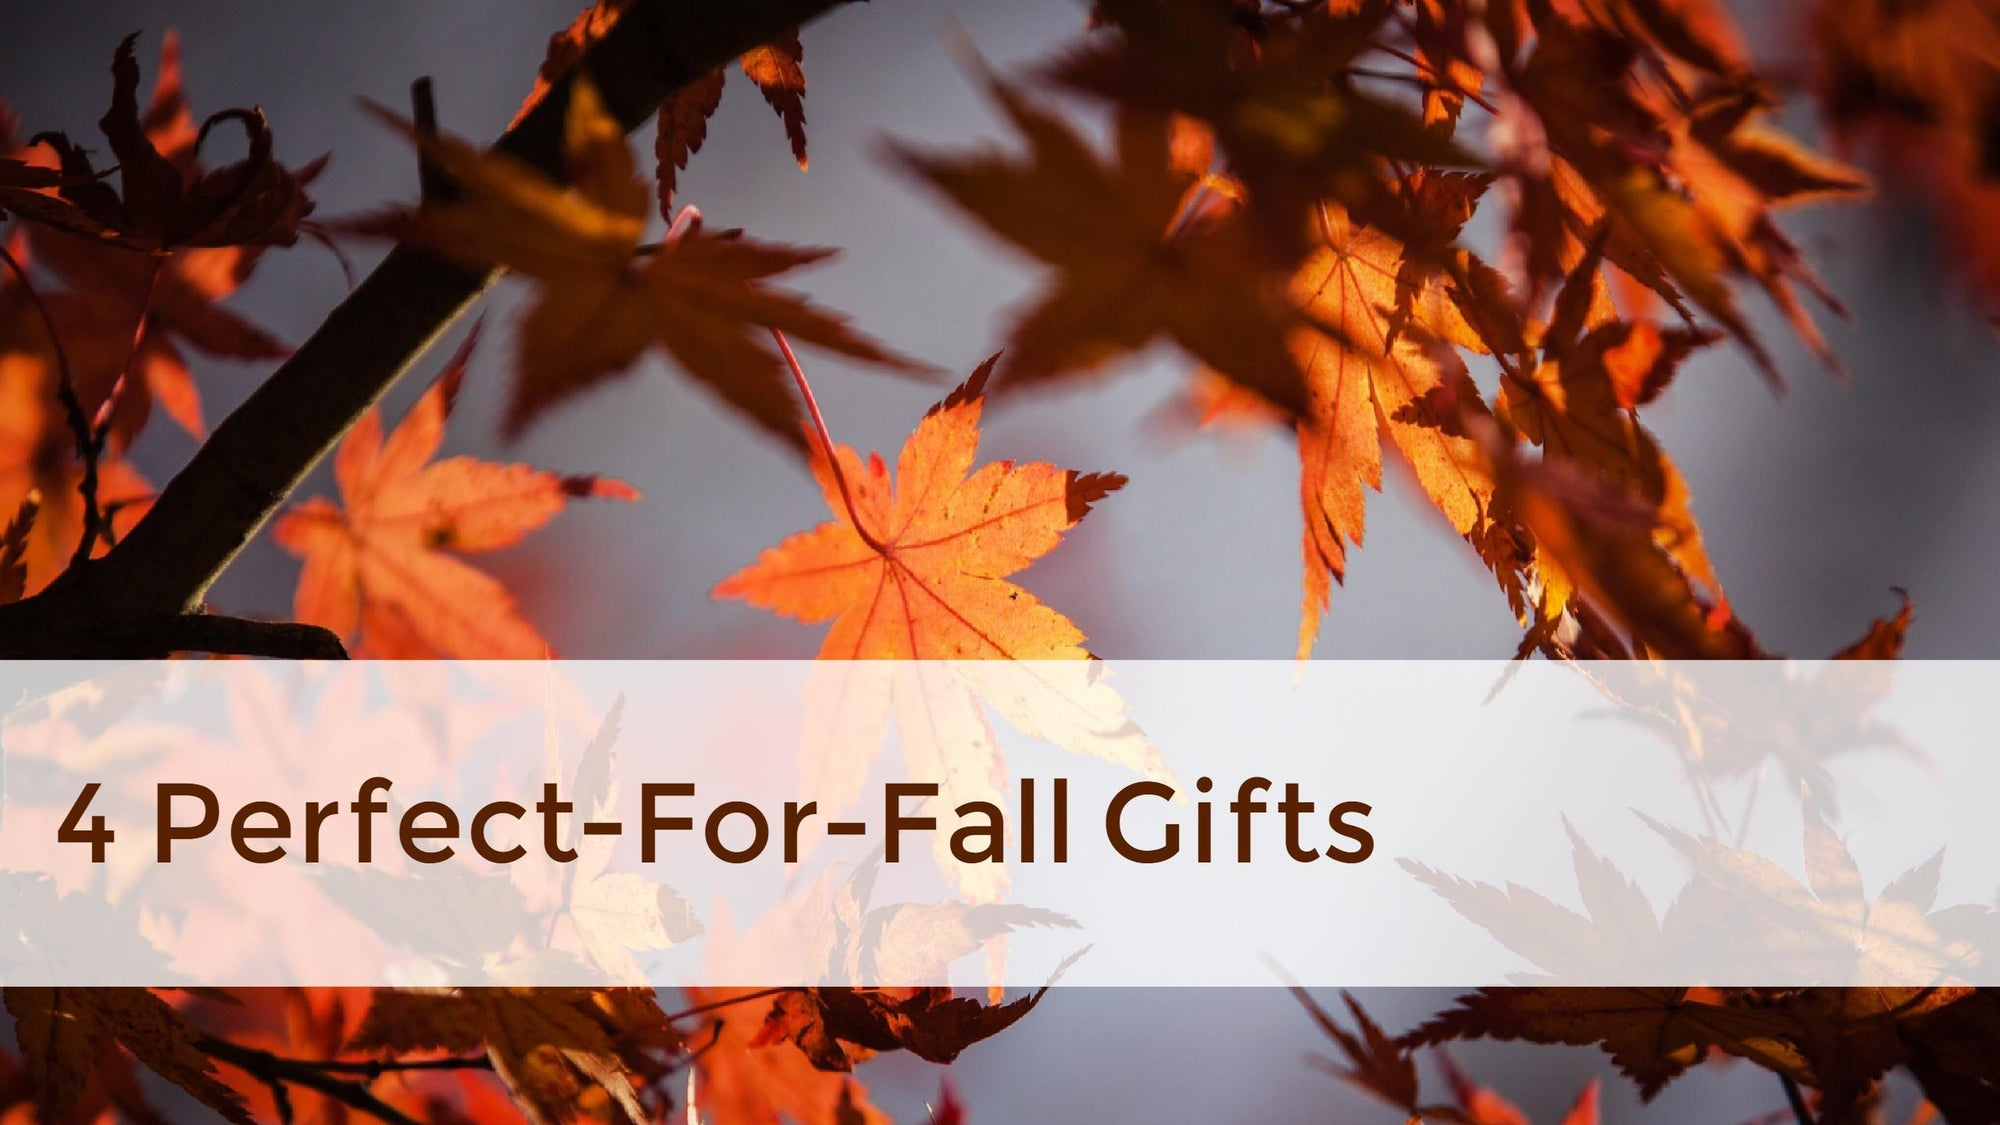 4 Perfect-for-Fall Gifts